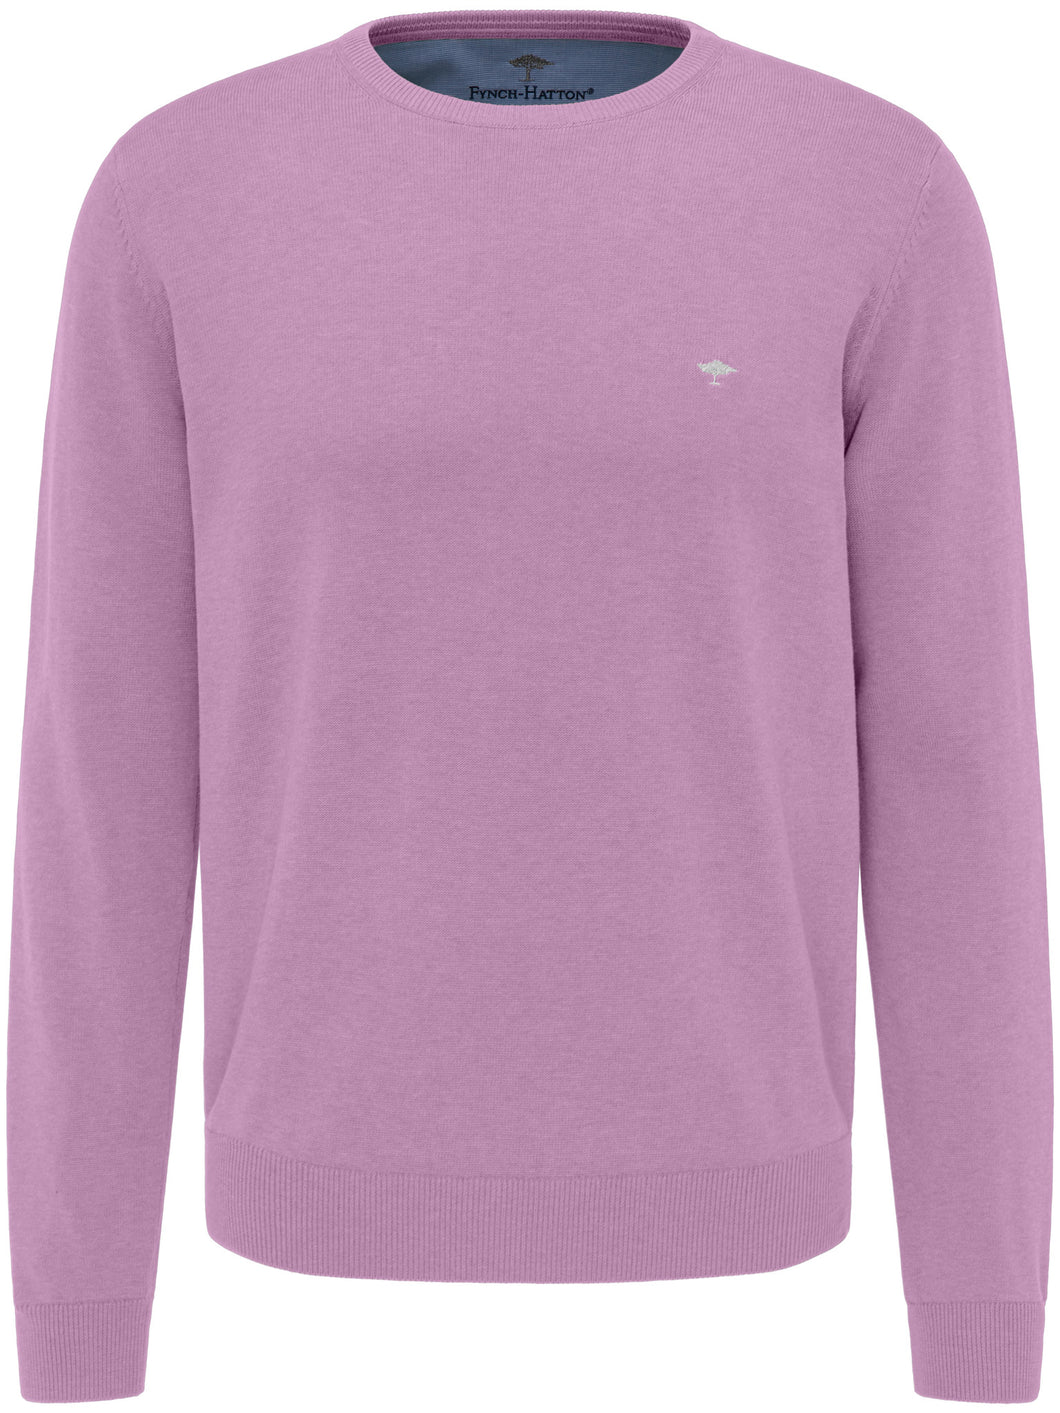 Fynch Hatton O-Neck in regular Classic fit.    Chosen in  Lavender